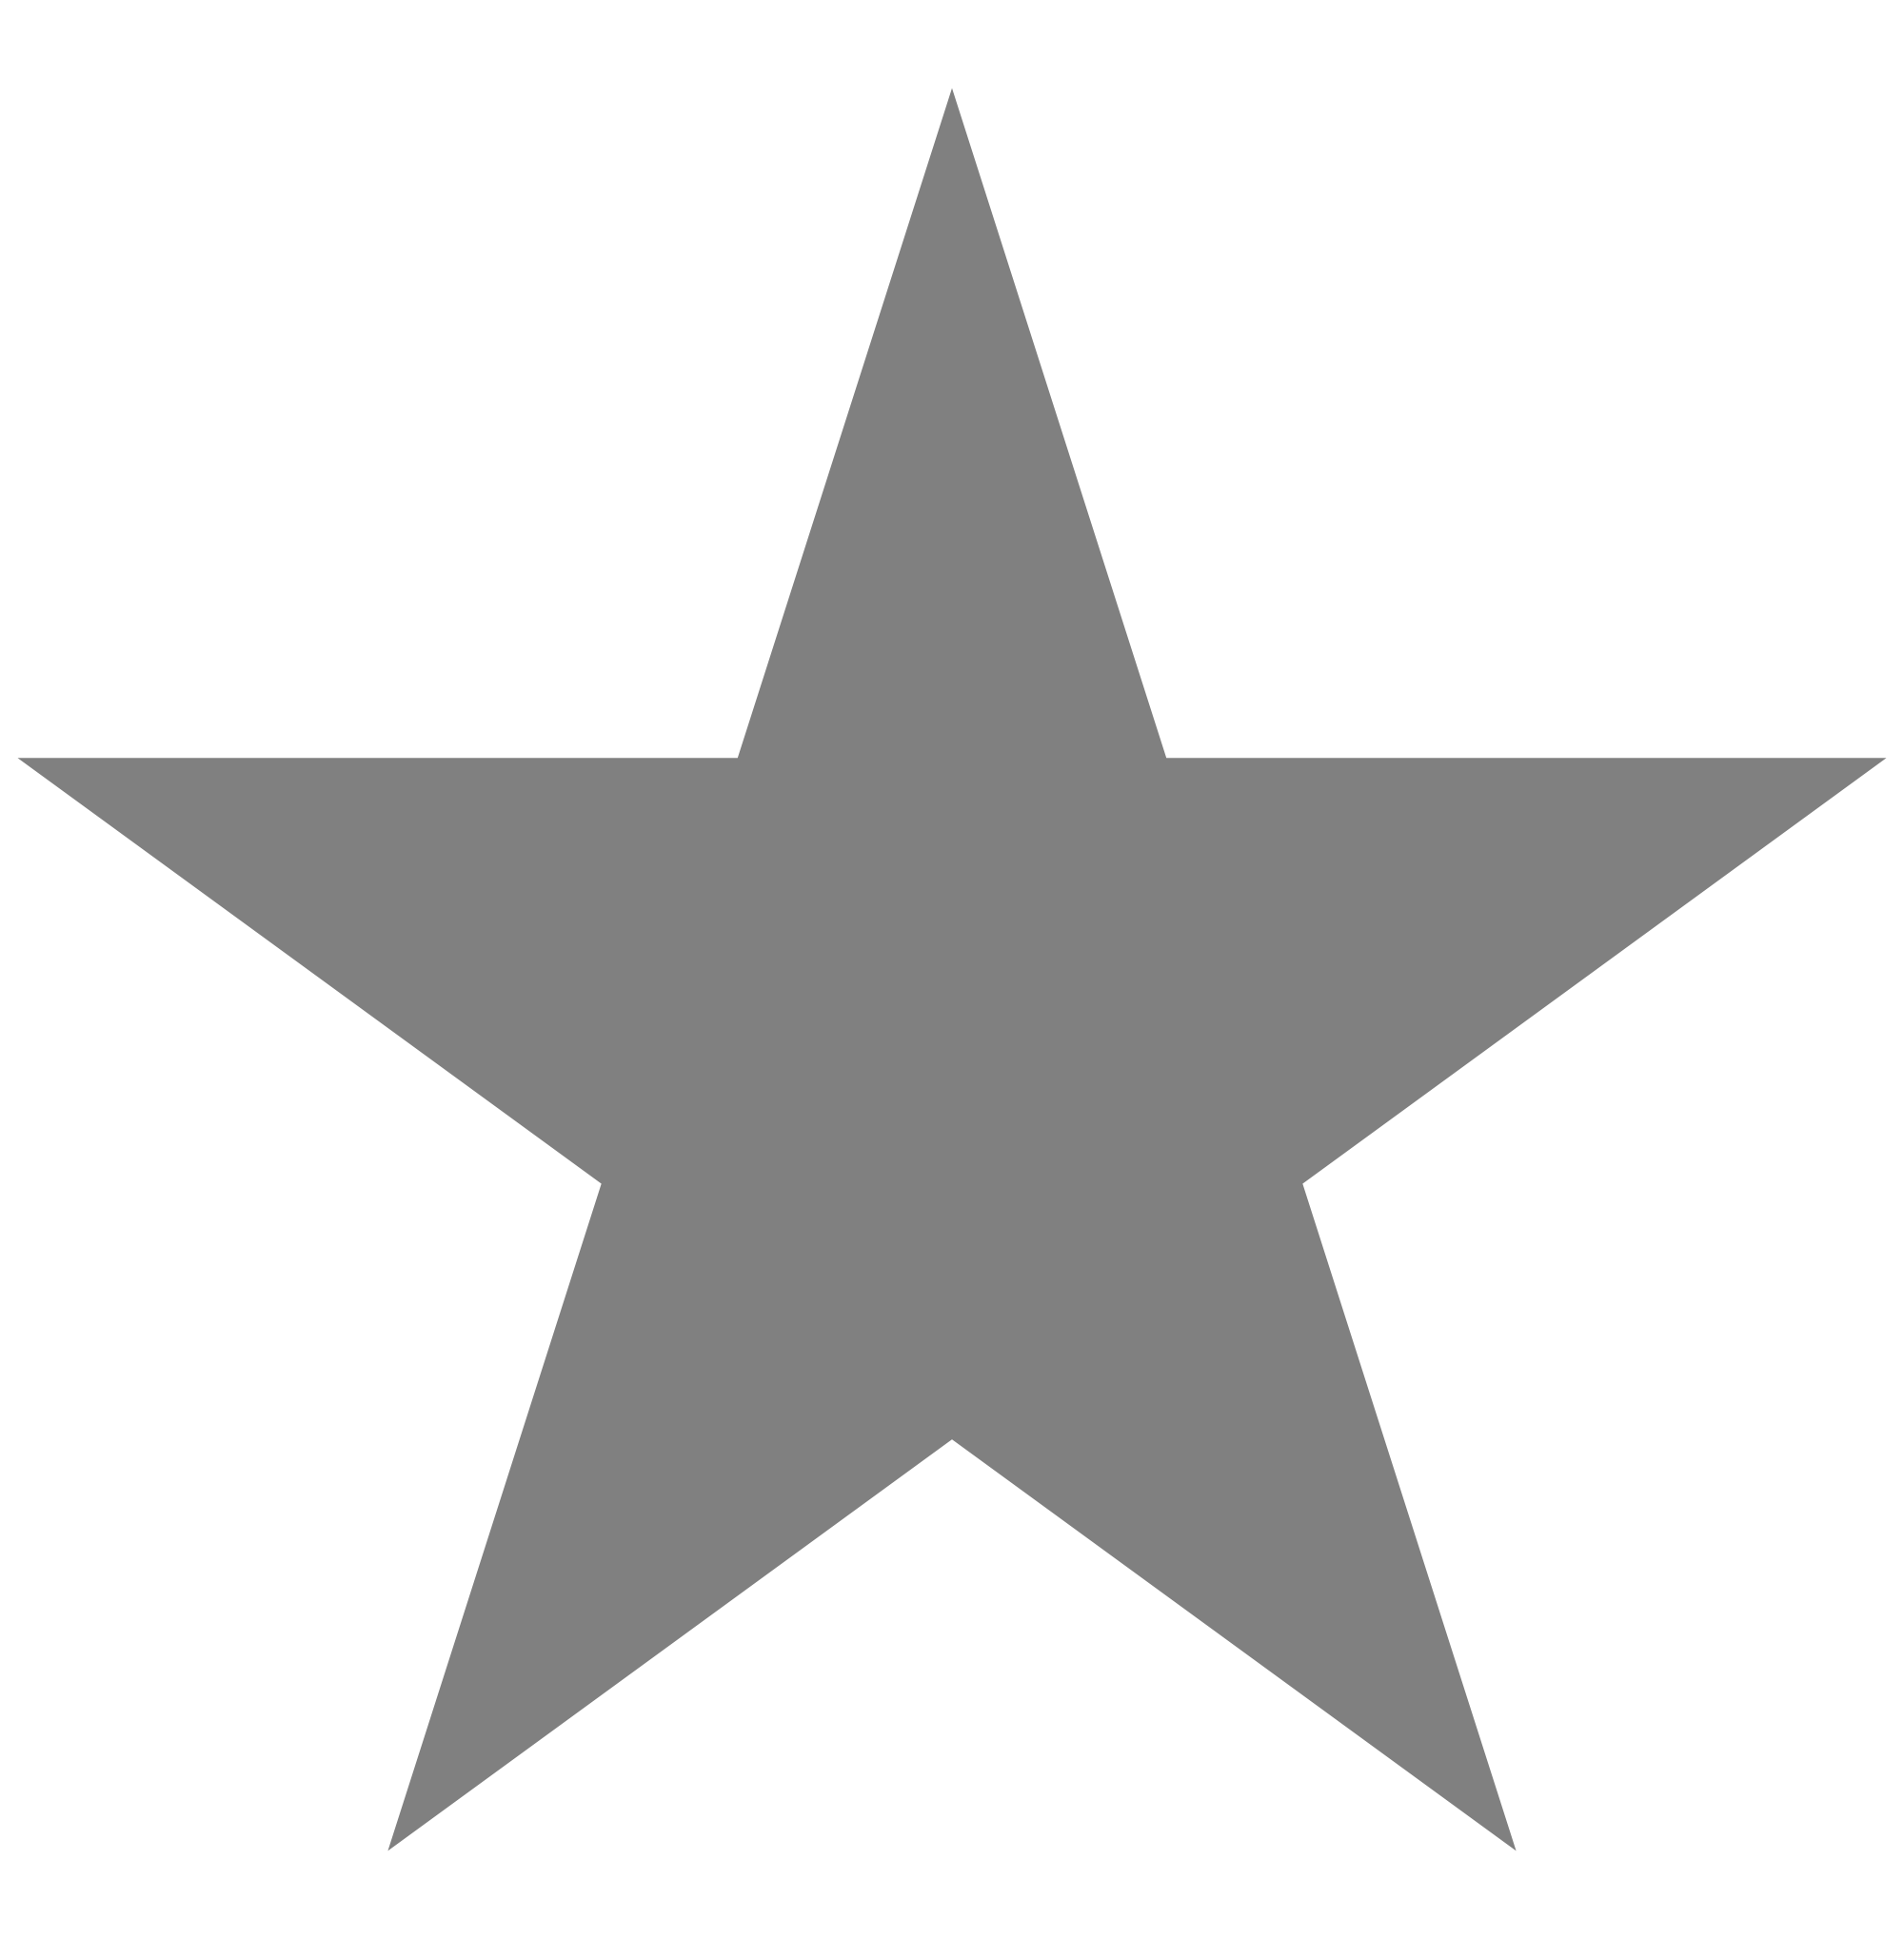 Star Empty.png - Star, Transparent background PNG HD thumbnail